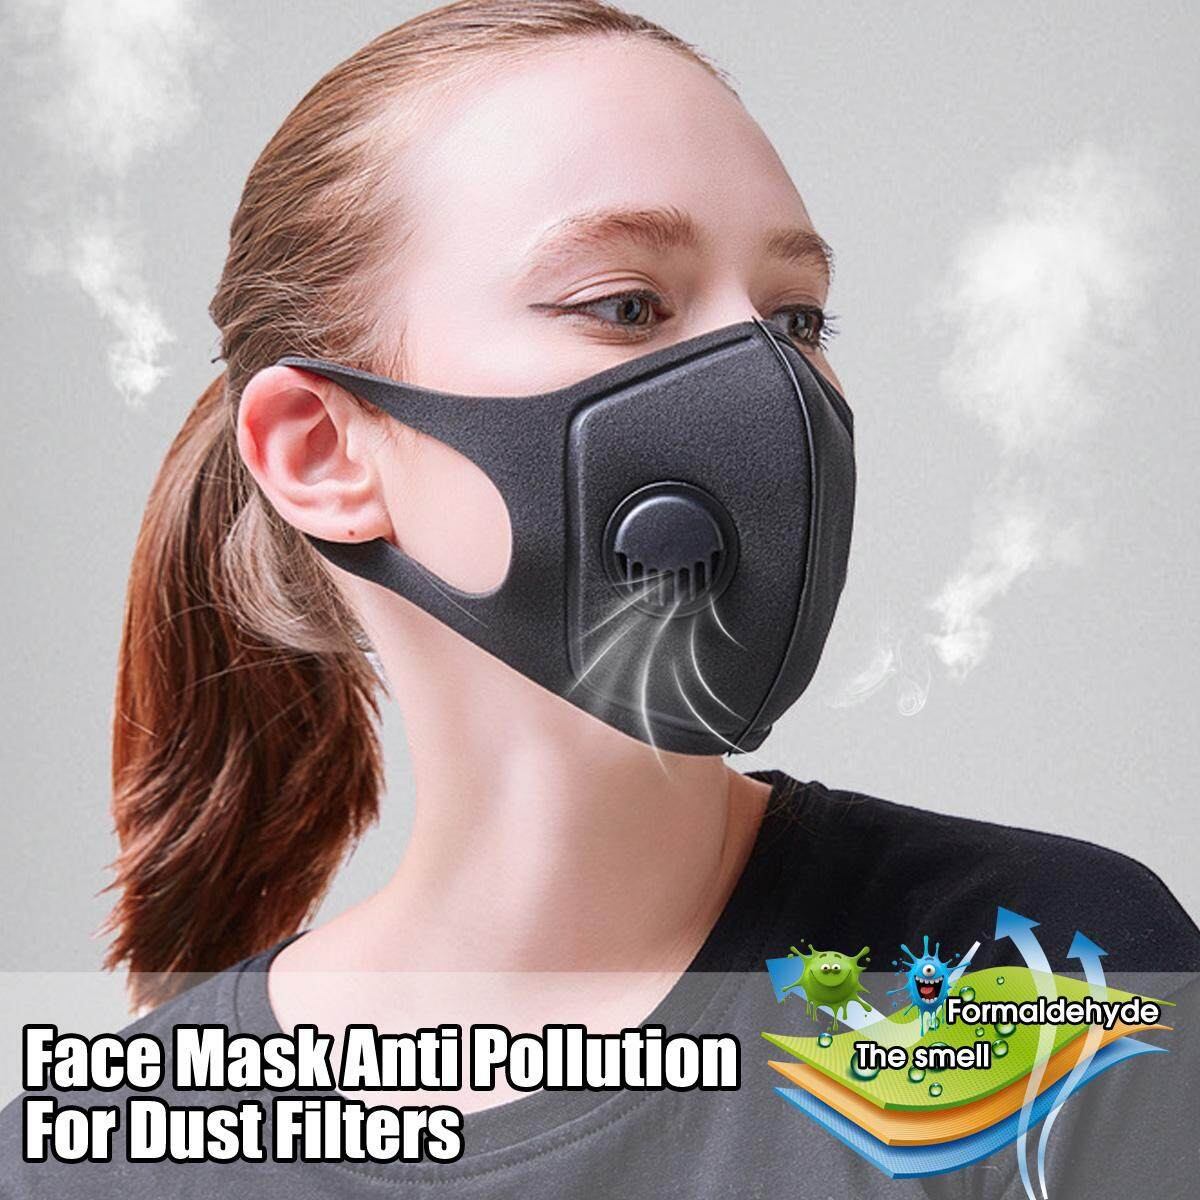 Reusable Double layer Mouth Masks Face Mask Anti-dust Air Mask Smog PM2.5 Purifier Filter Activated Carbon Filter